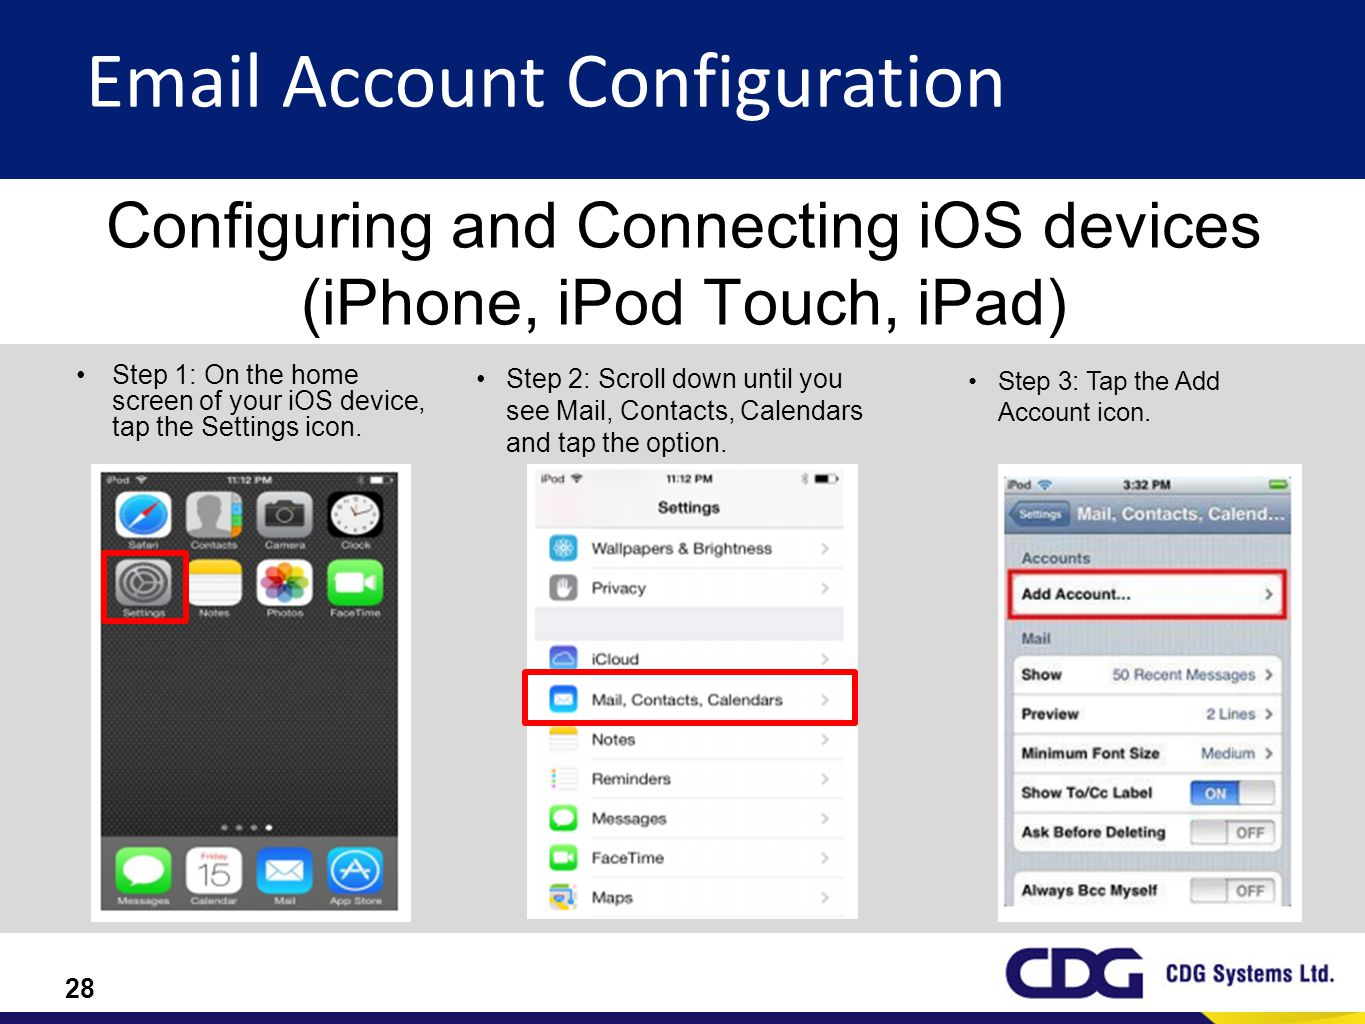 Configuring and Connecting iOS devices (iPhone, iPod Touch, iPad)